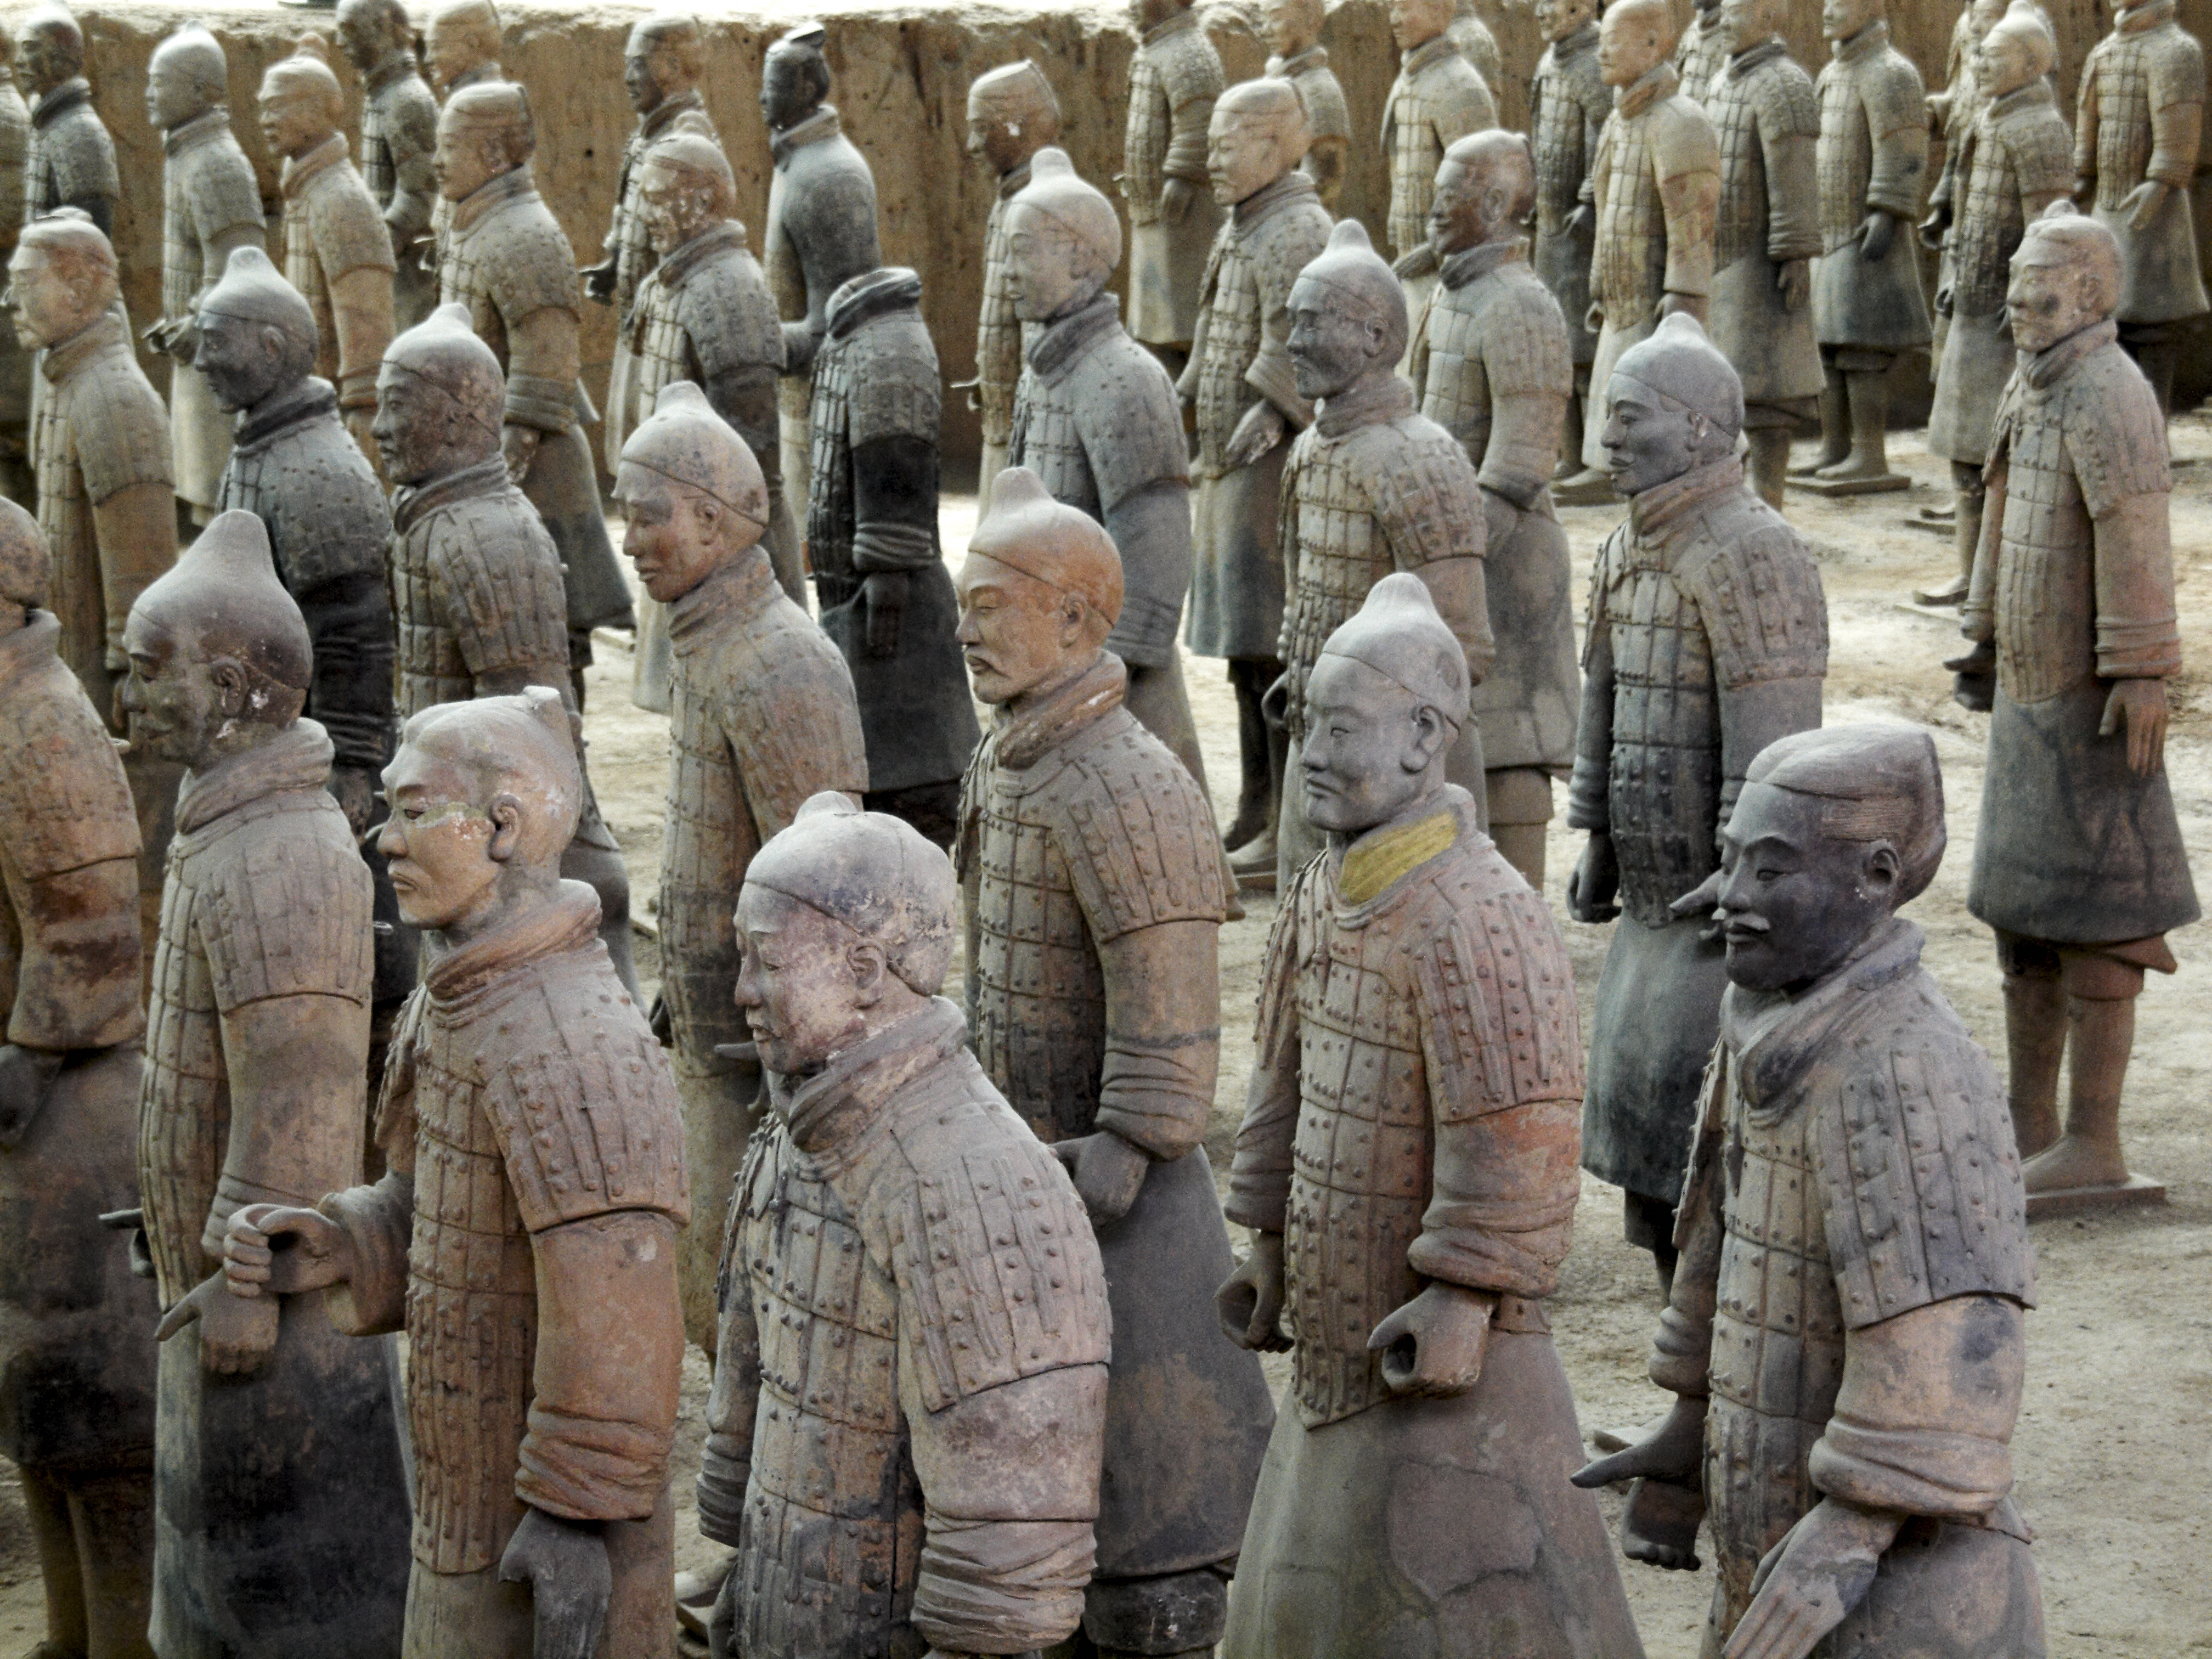 http://upload.wikimedia.org/wikipedia/commons/9/9b/The_Color_of_Terracotta_Warriors.jpg